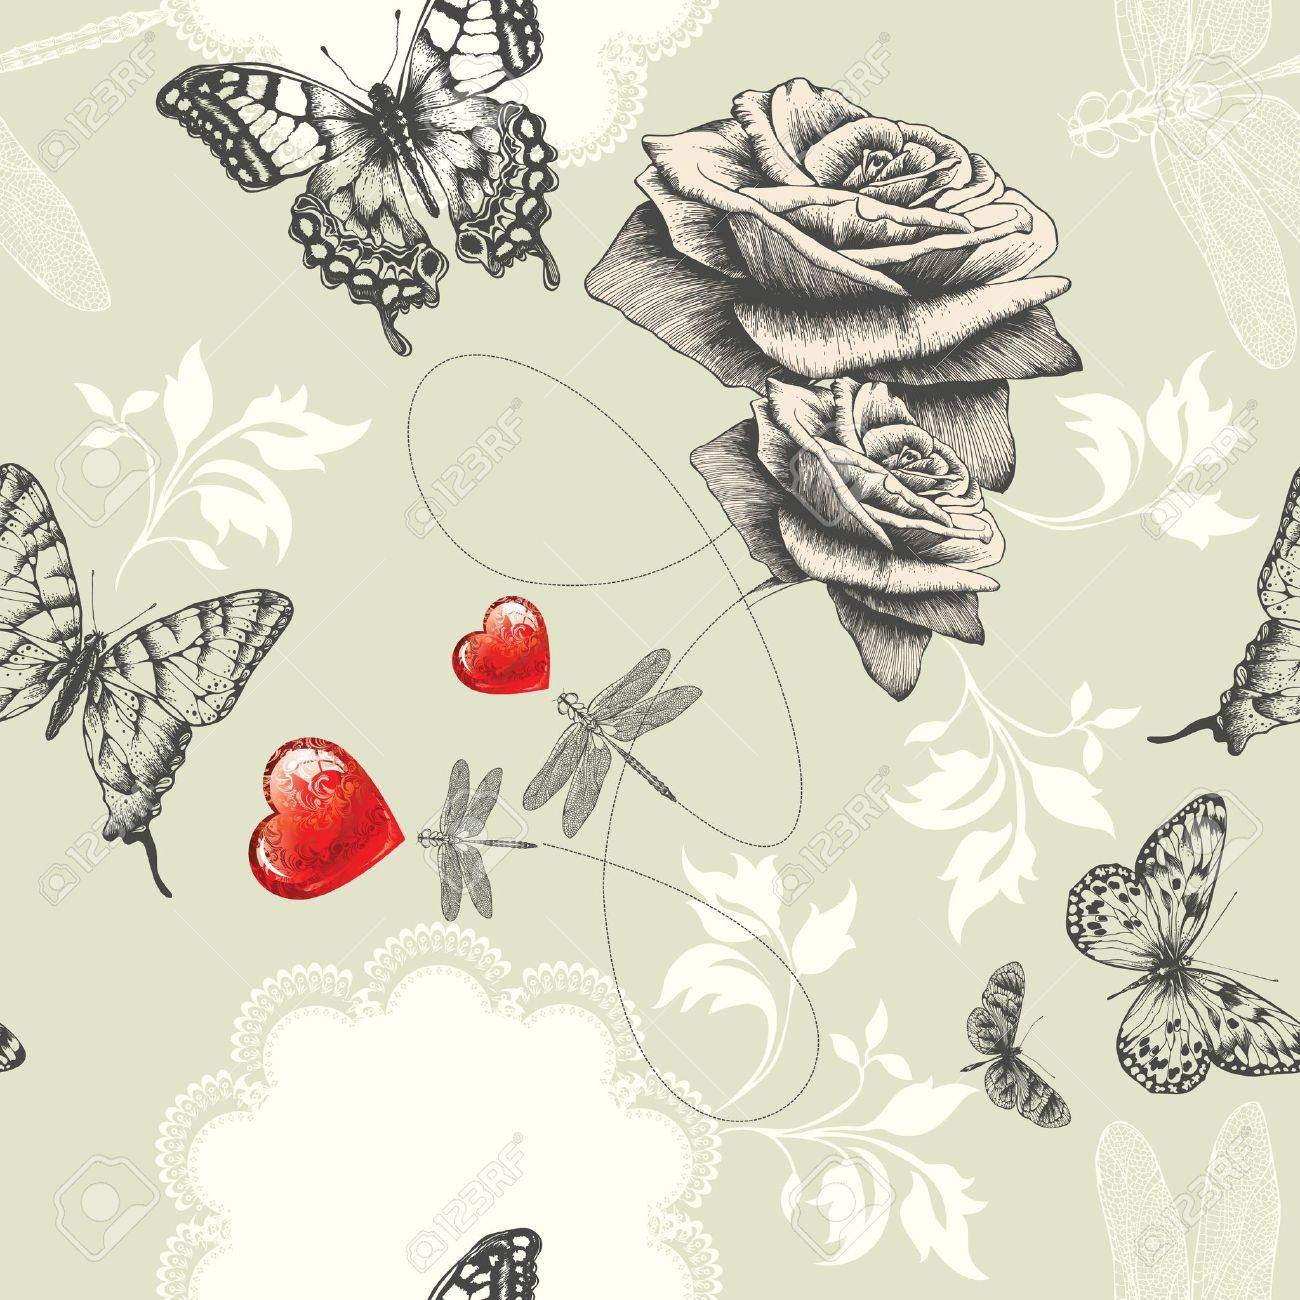 Best Wallpaper Butterfly Hand - 12487590-seamless-wallpaper-with-roses-butterflies-and-red-hearts-hand-drawing-vector-  You Should Have_32758.jpg